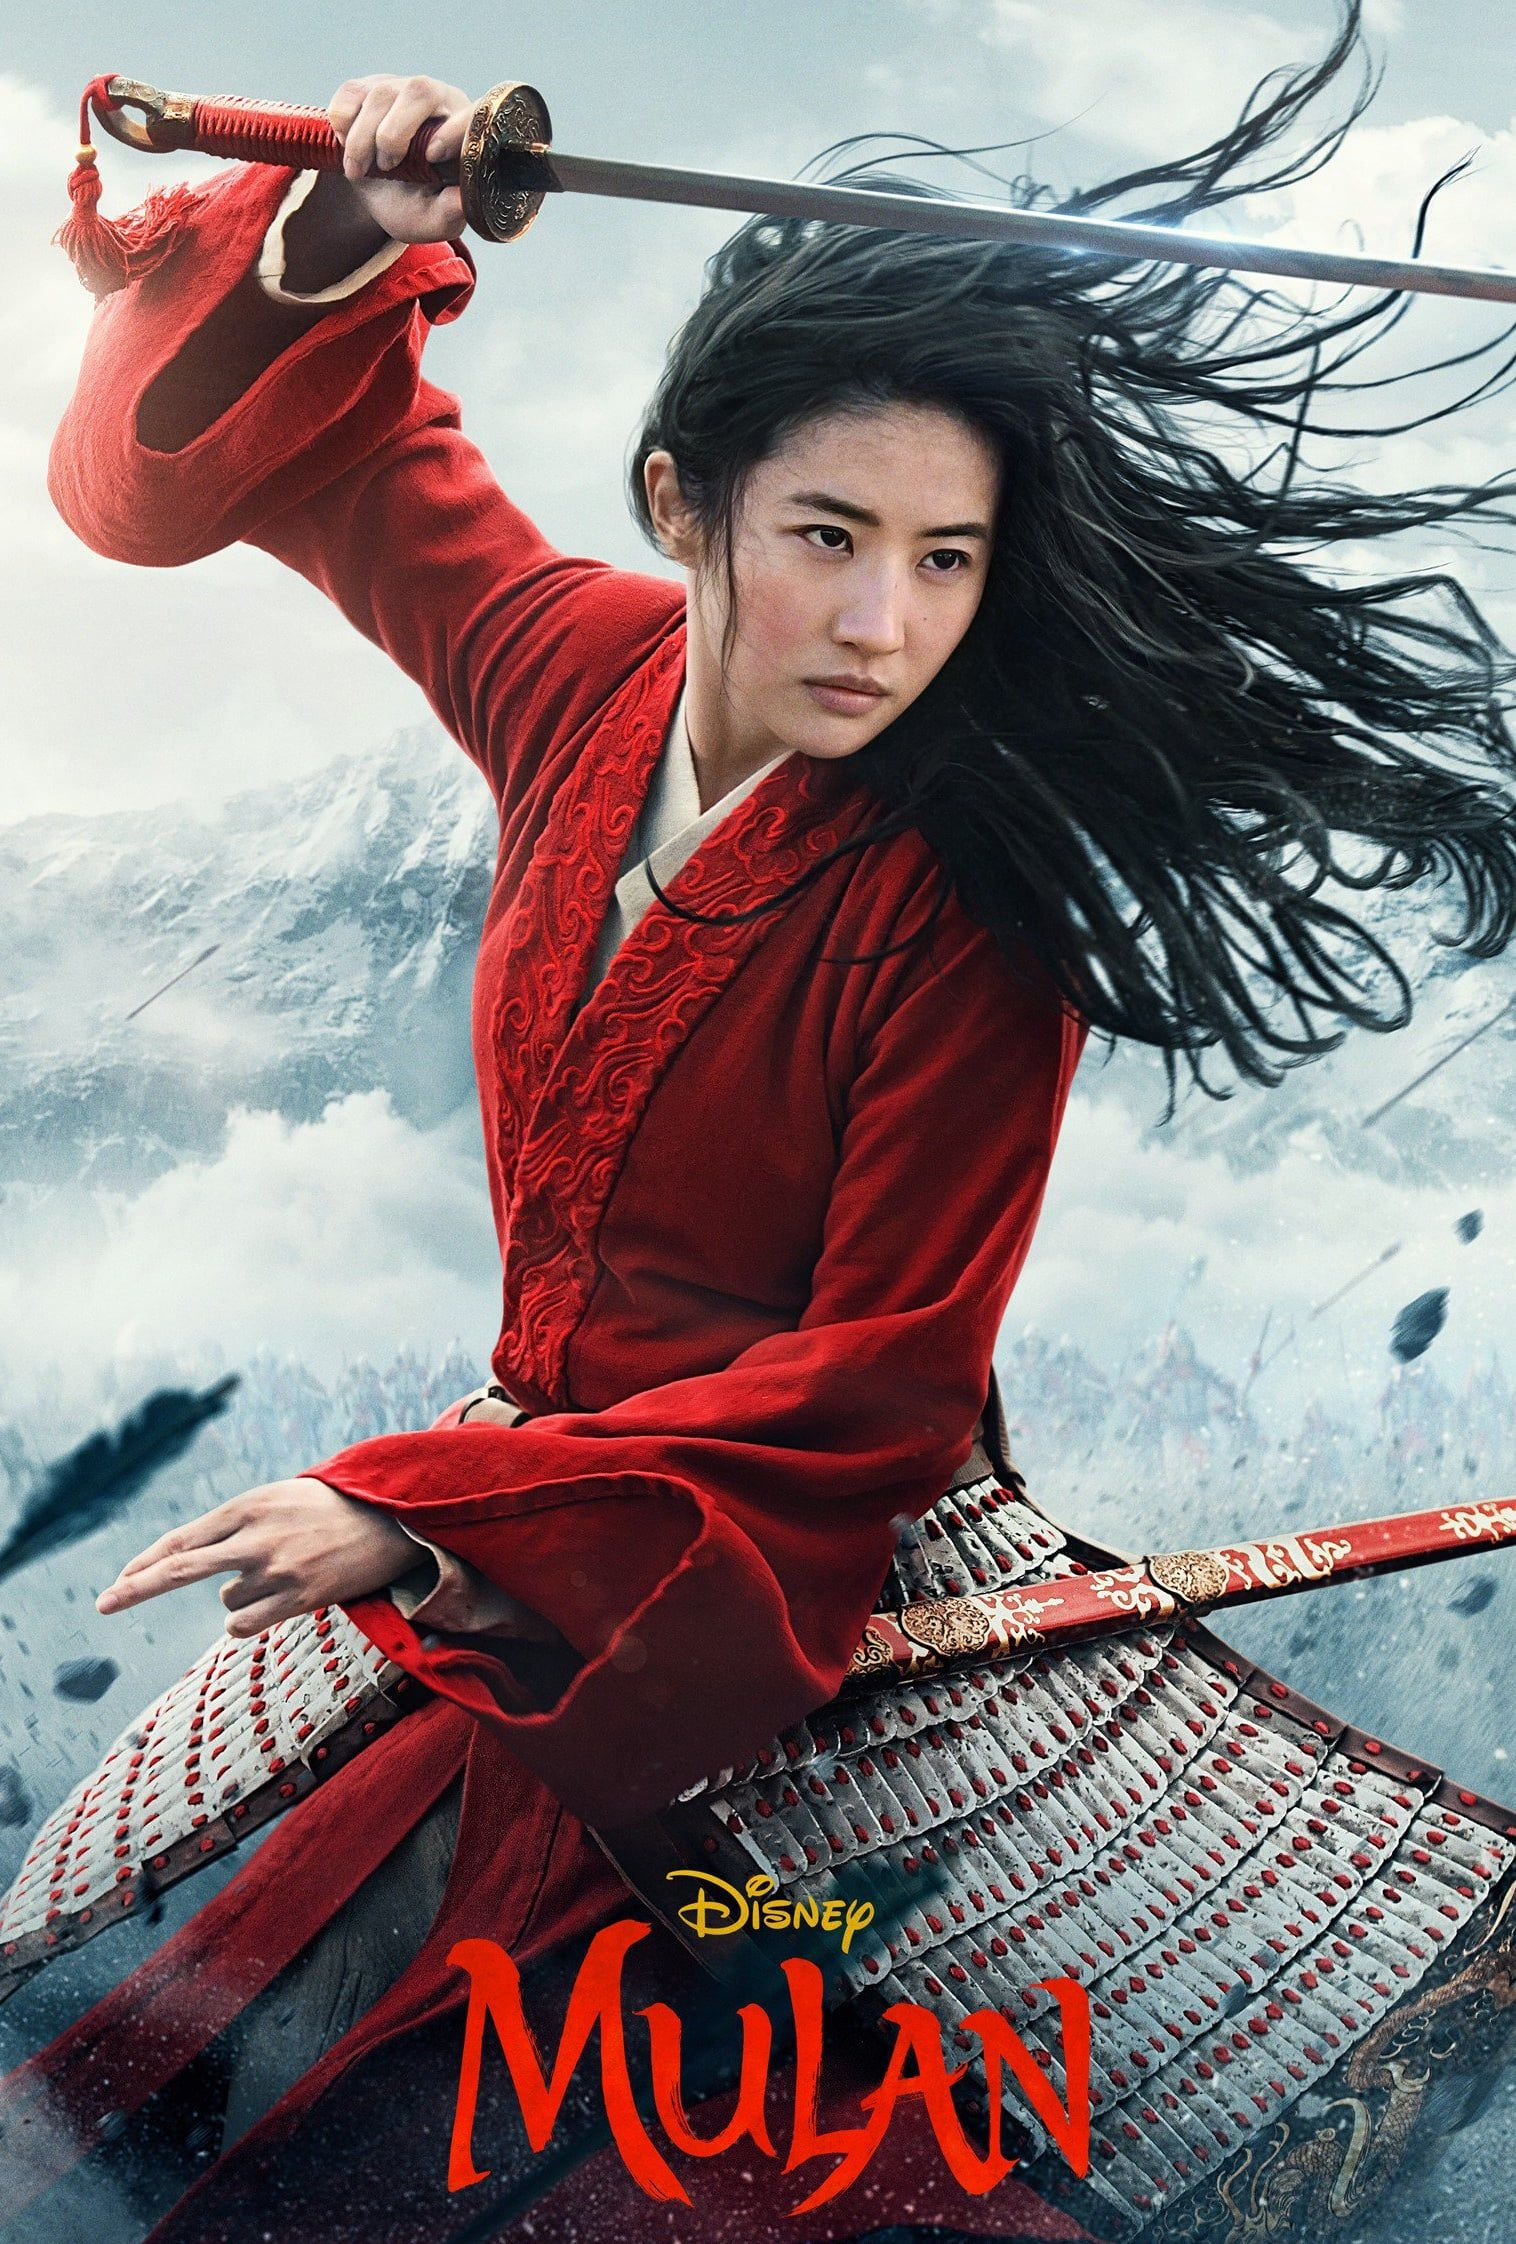 Watch Movie Full Mulan Hd Free Download 2020 Filmes Online Gratis Filmes Online Gratis Dublado Filmes Gratis